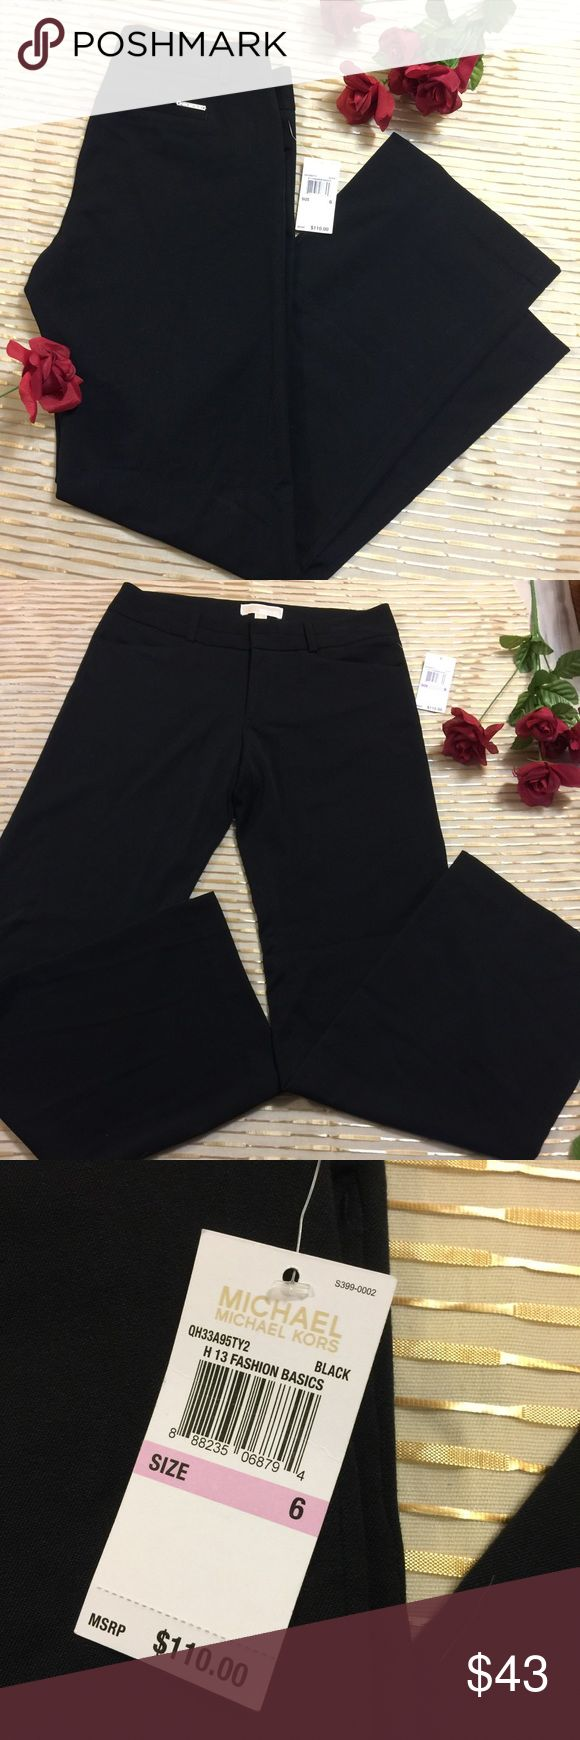 "NWT MICHAEL Michael Kors Black Wide Leg Trousers 6 Brand new with tags, MSRP $110, MICHAEL Michael Kors Black Dress Pants. 31"" inseam. 9"" rise. Size 6. Wide Leg. Perfect career piece. MICHAEL Michael Kors Pants Trousers"